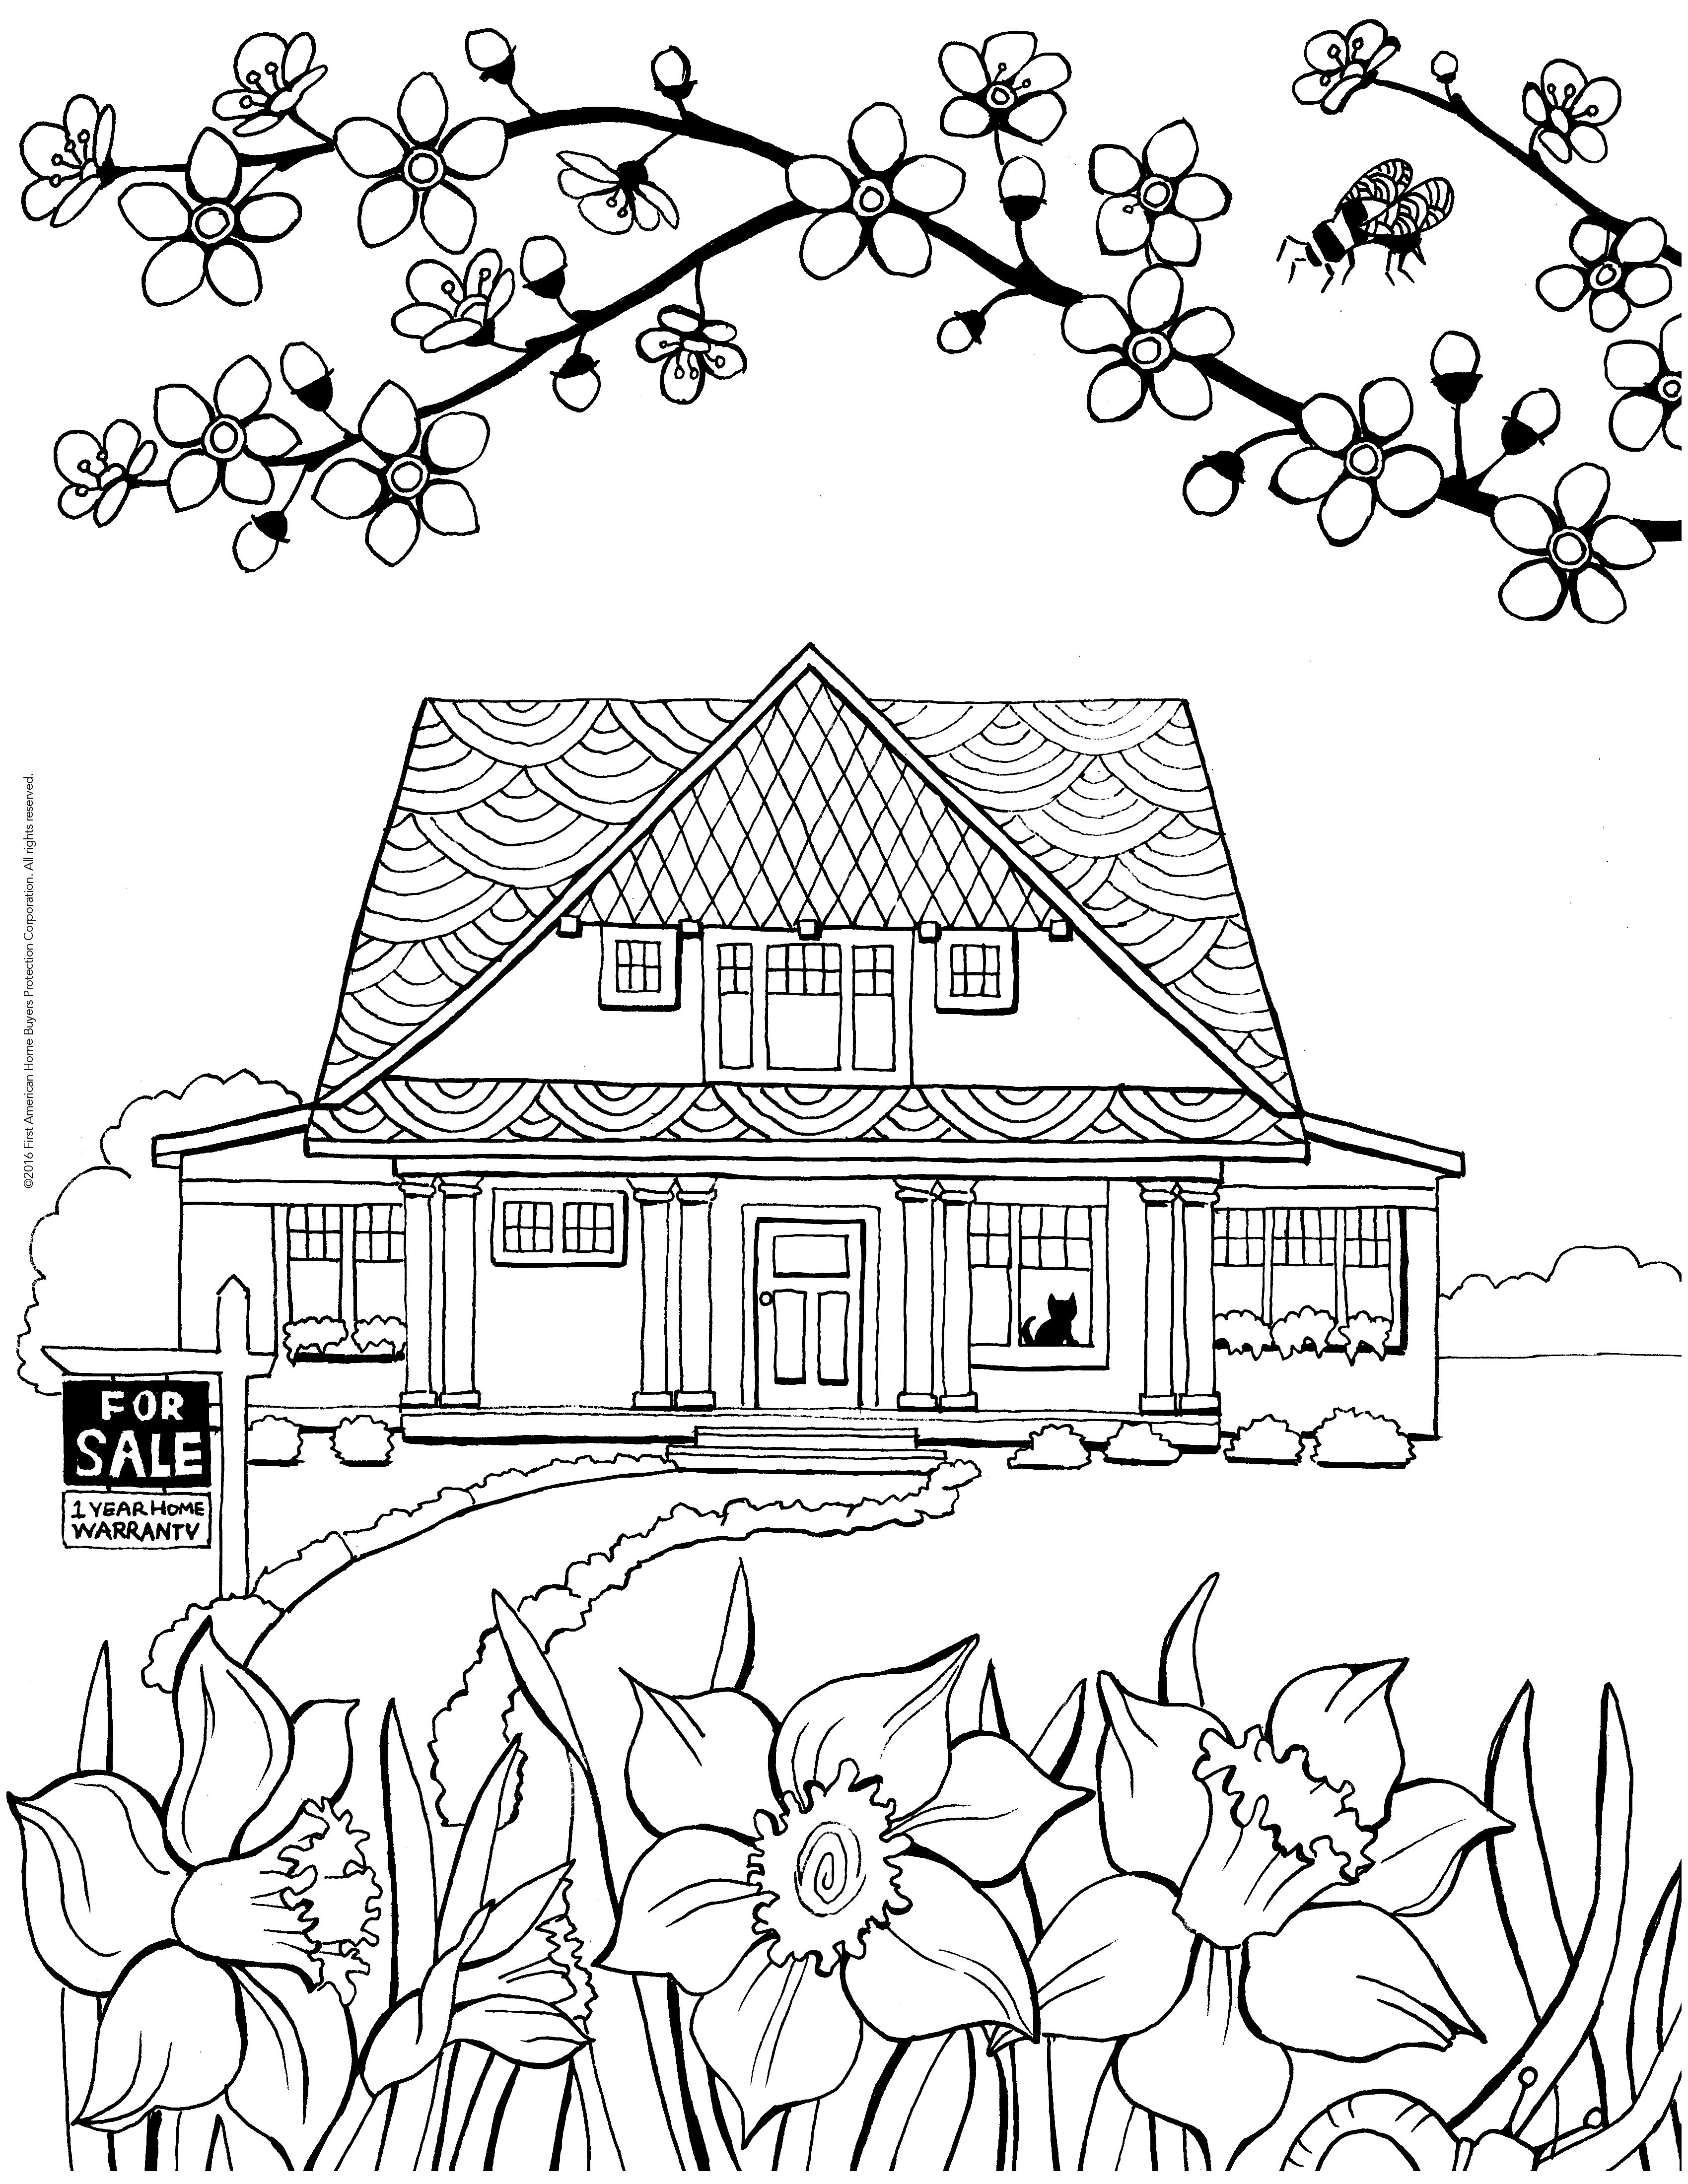 Escape With Coloring My Drawings Coloring Pages Drawings